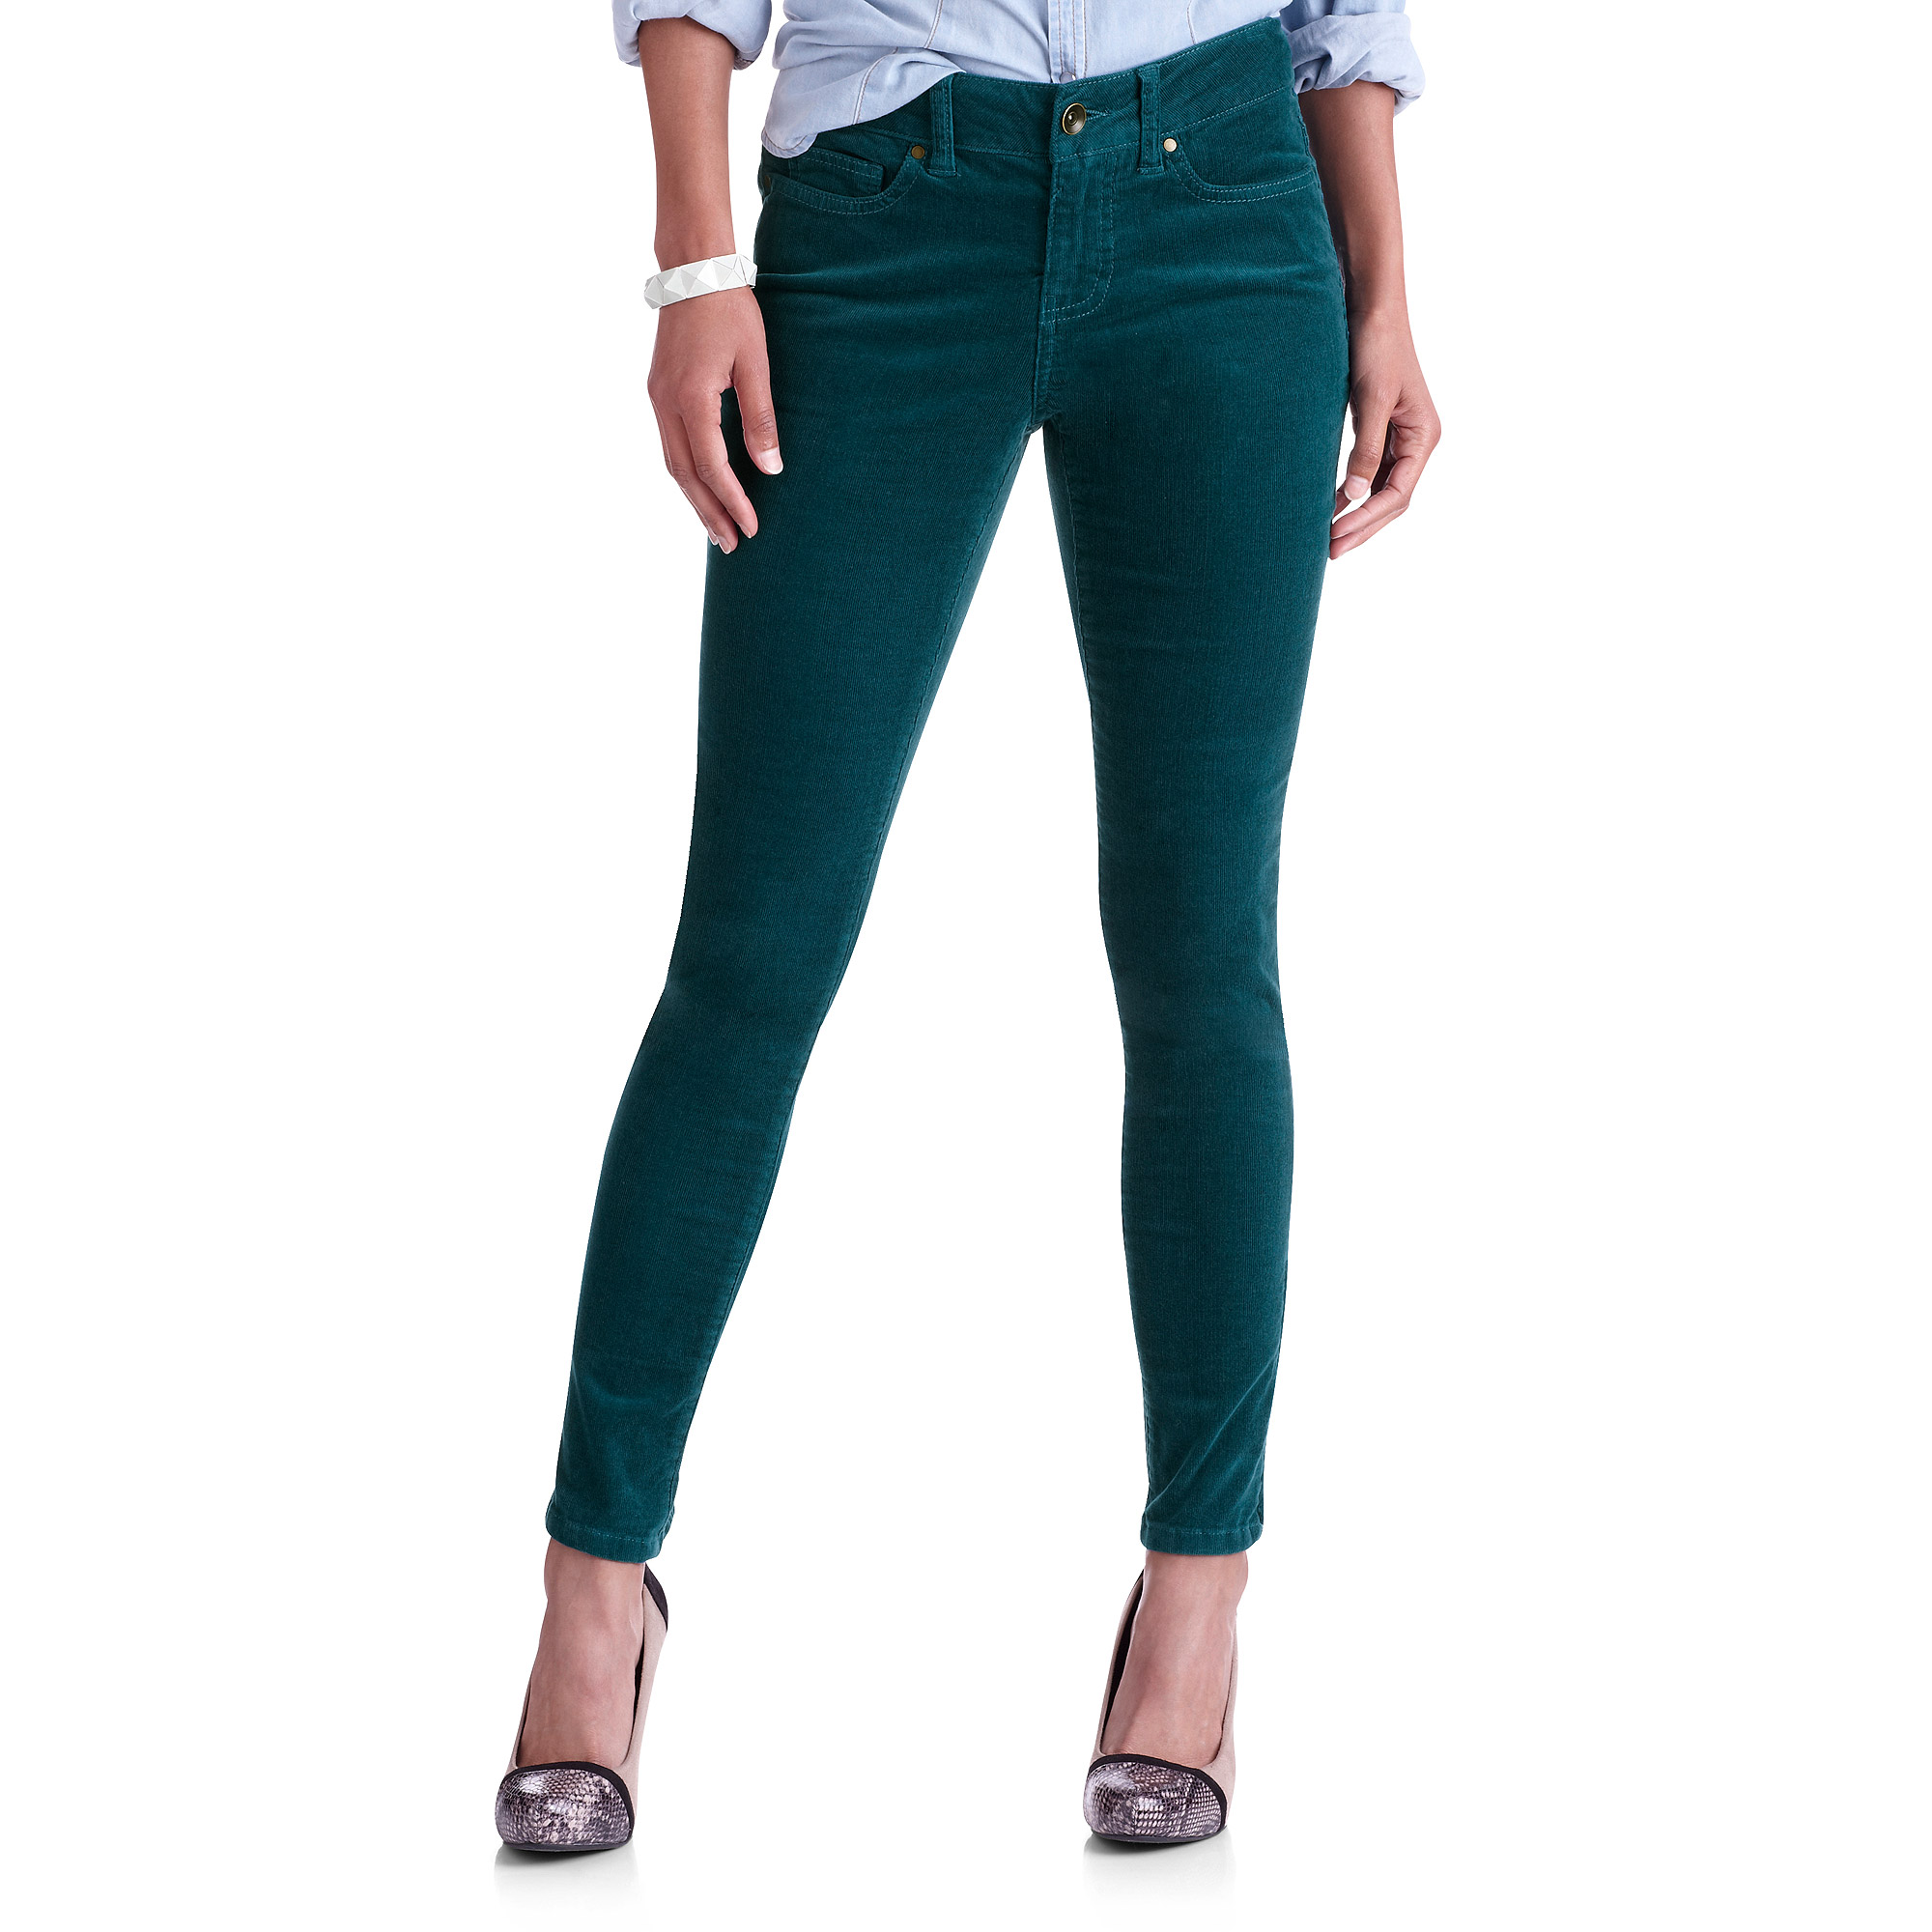 Faded Glory Womens Ankle Zip Corduroy Pants - Walmart.com